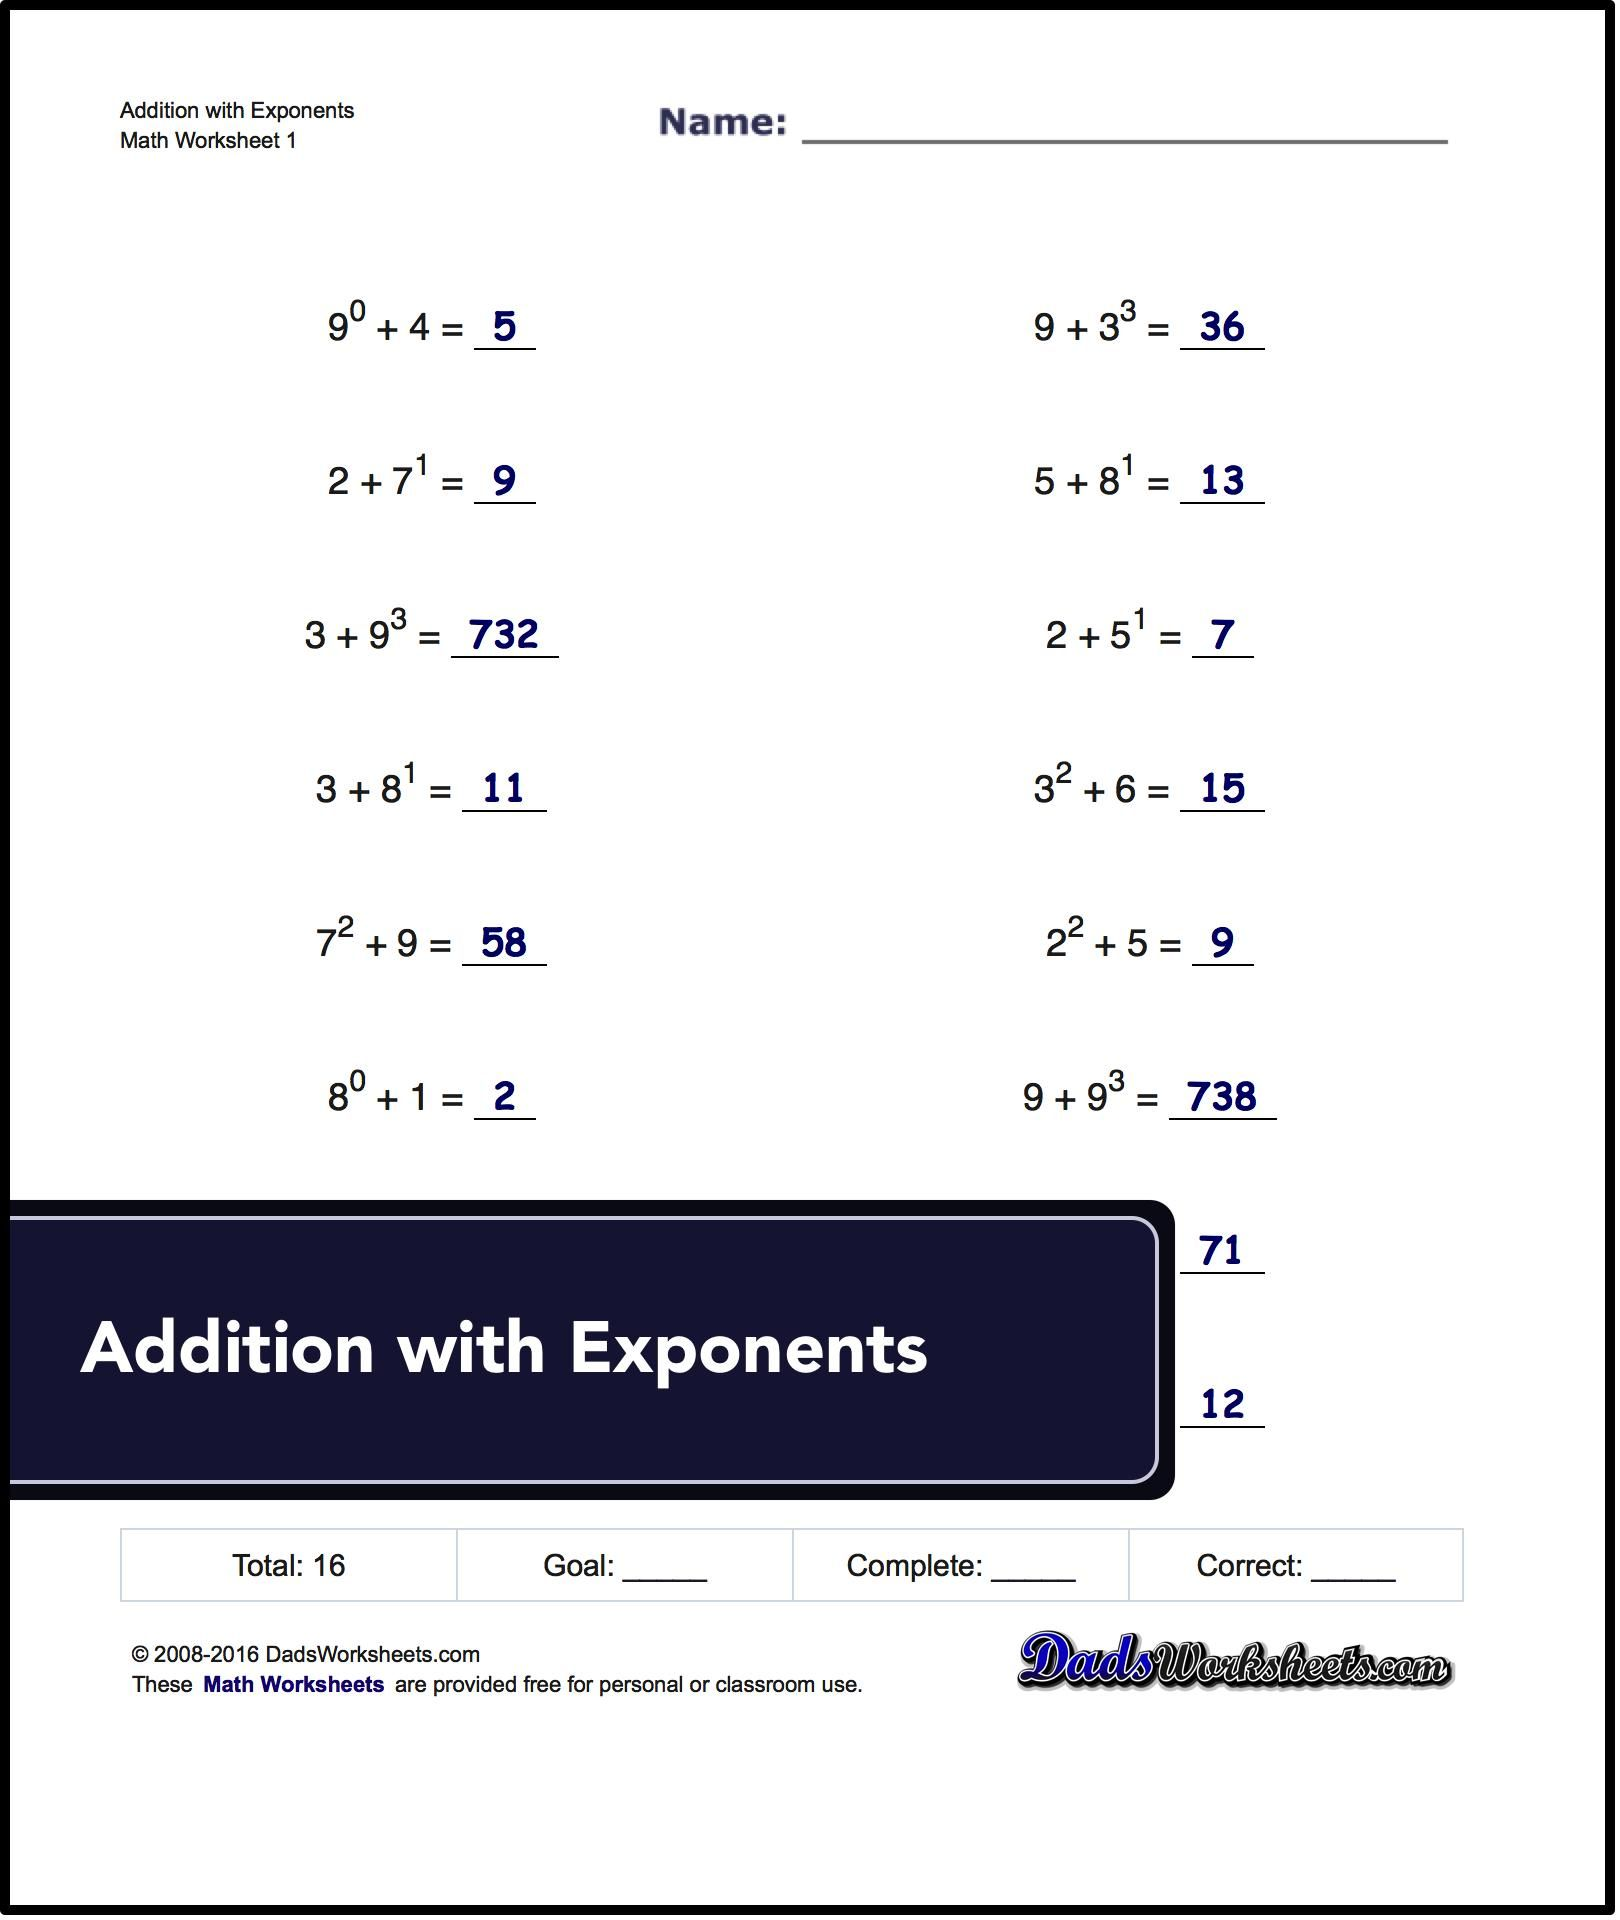 worksheet Order Of Operations Rules adding exponents worksheets including simple problems where are combined and order of operations rules